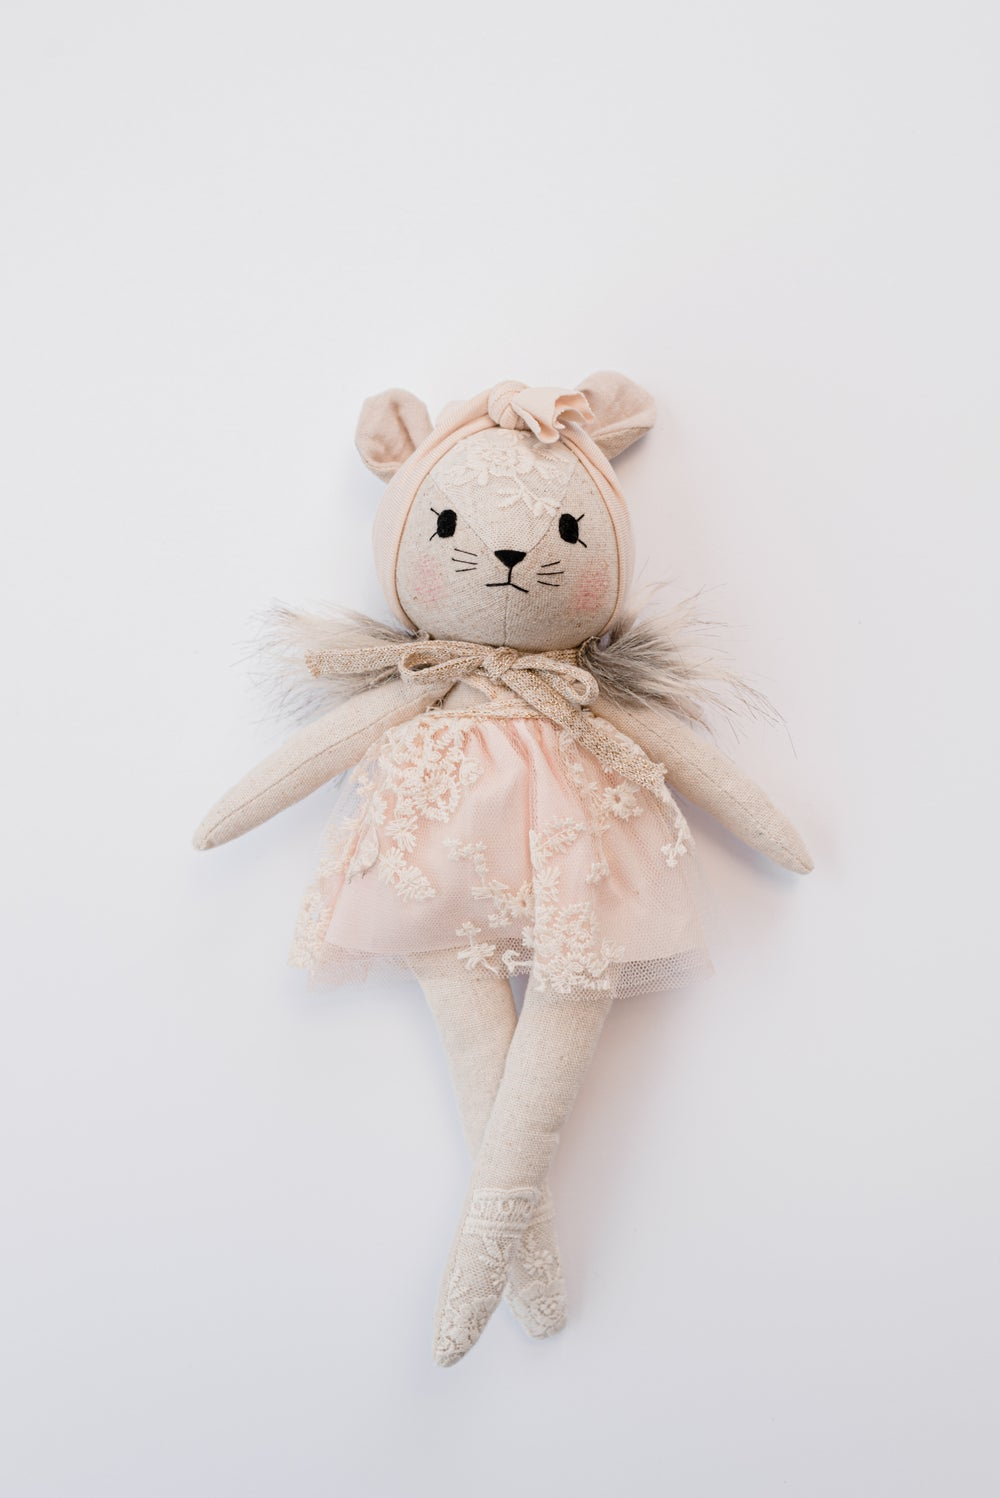 MOUSE WITH POWDER PINK DRESS